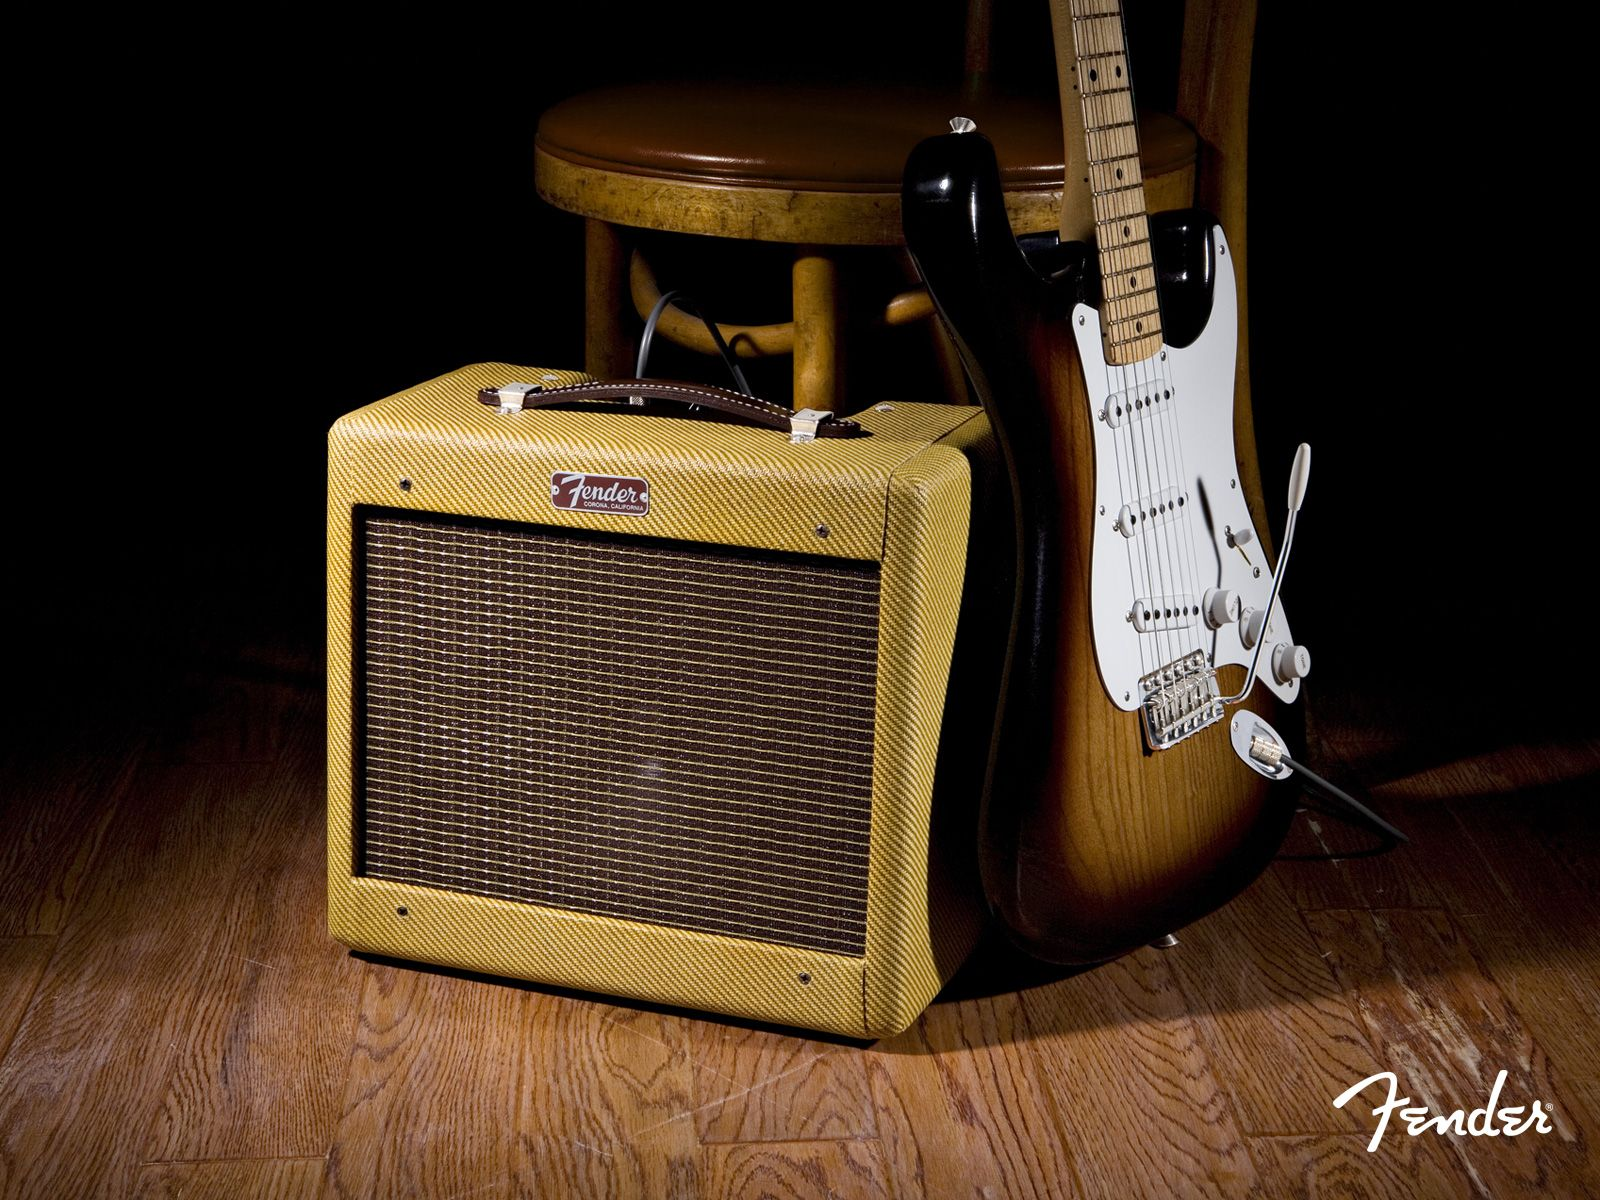 fender stratocaster hd wallpaper wallpapers pinterest fender